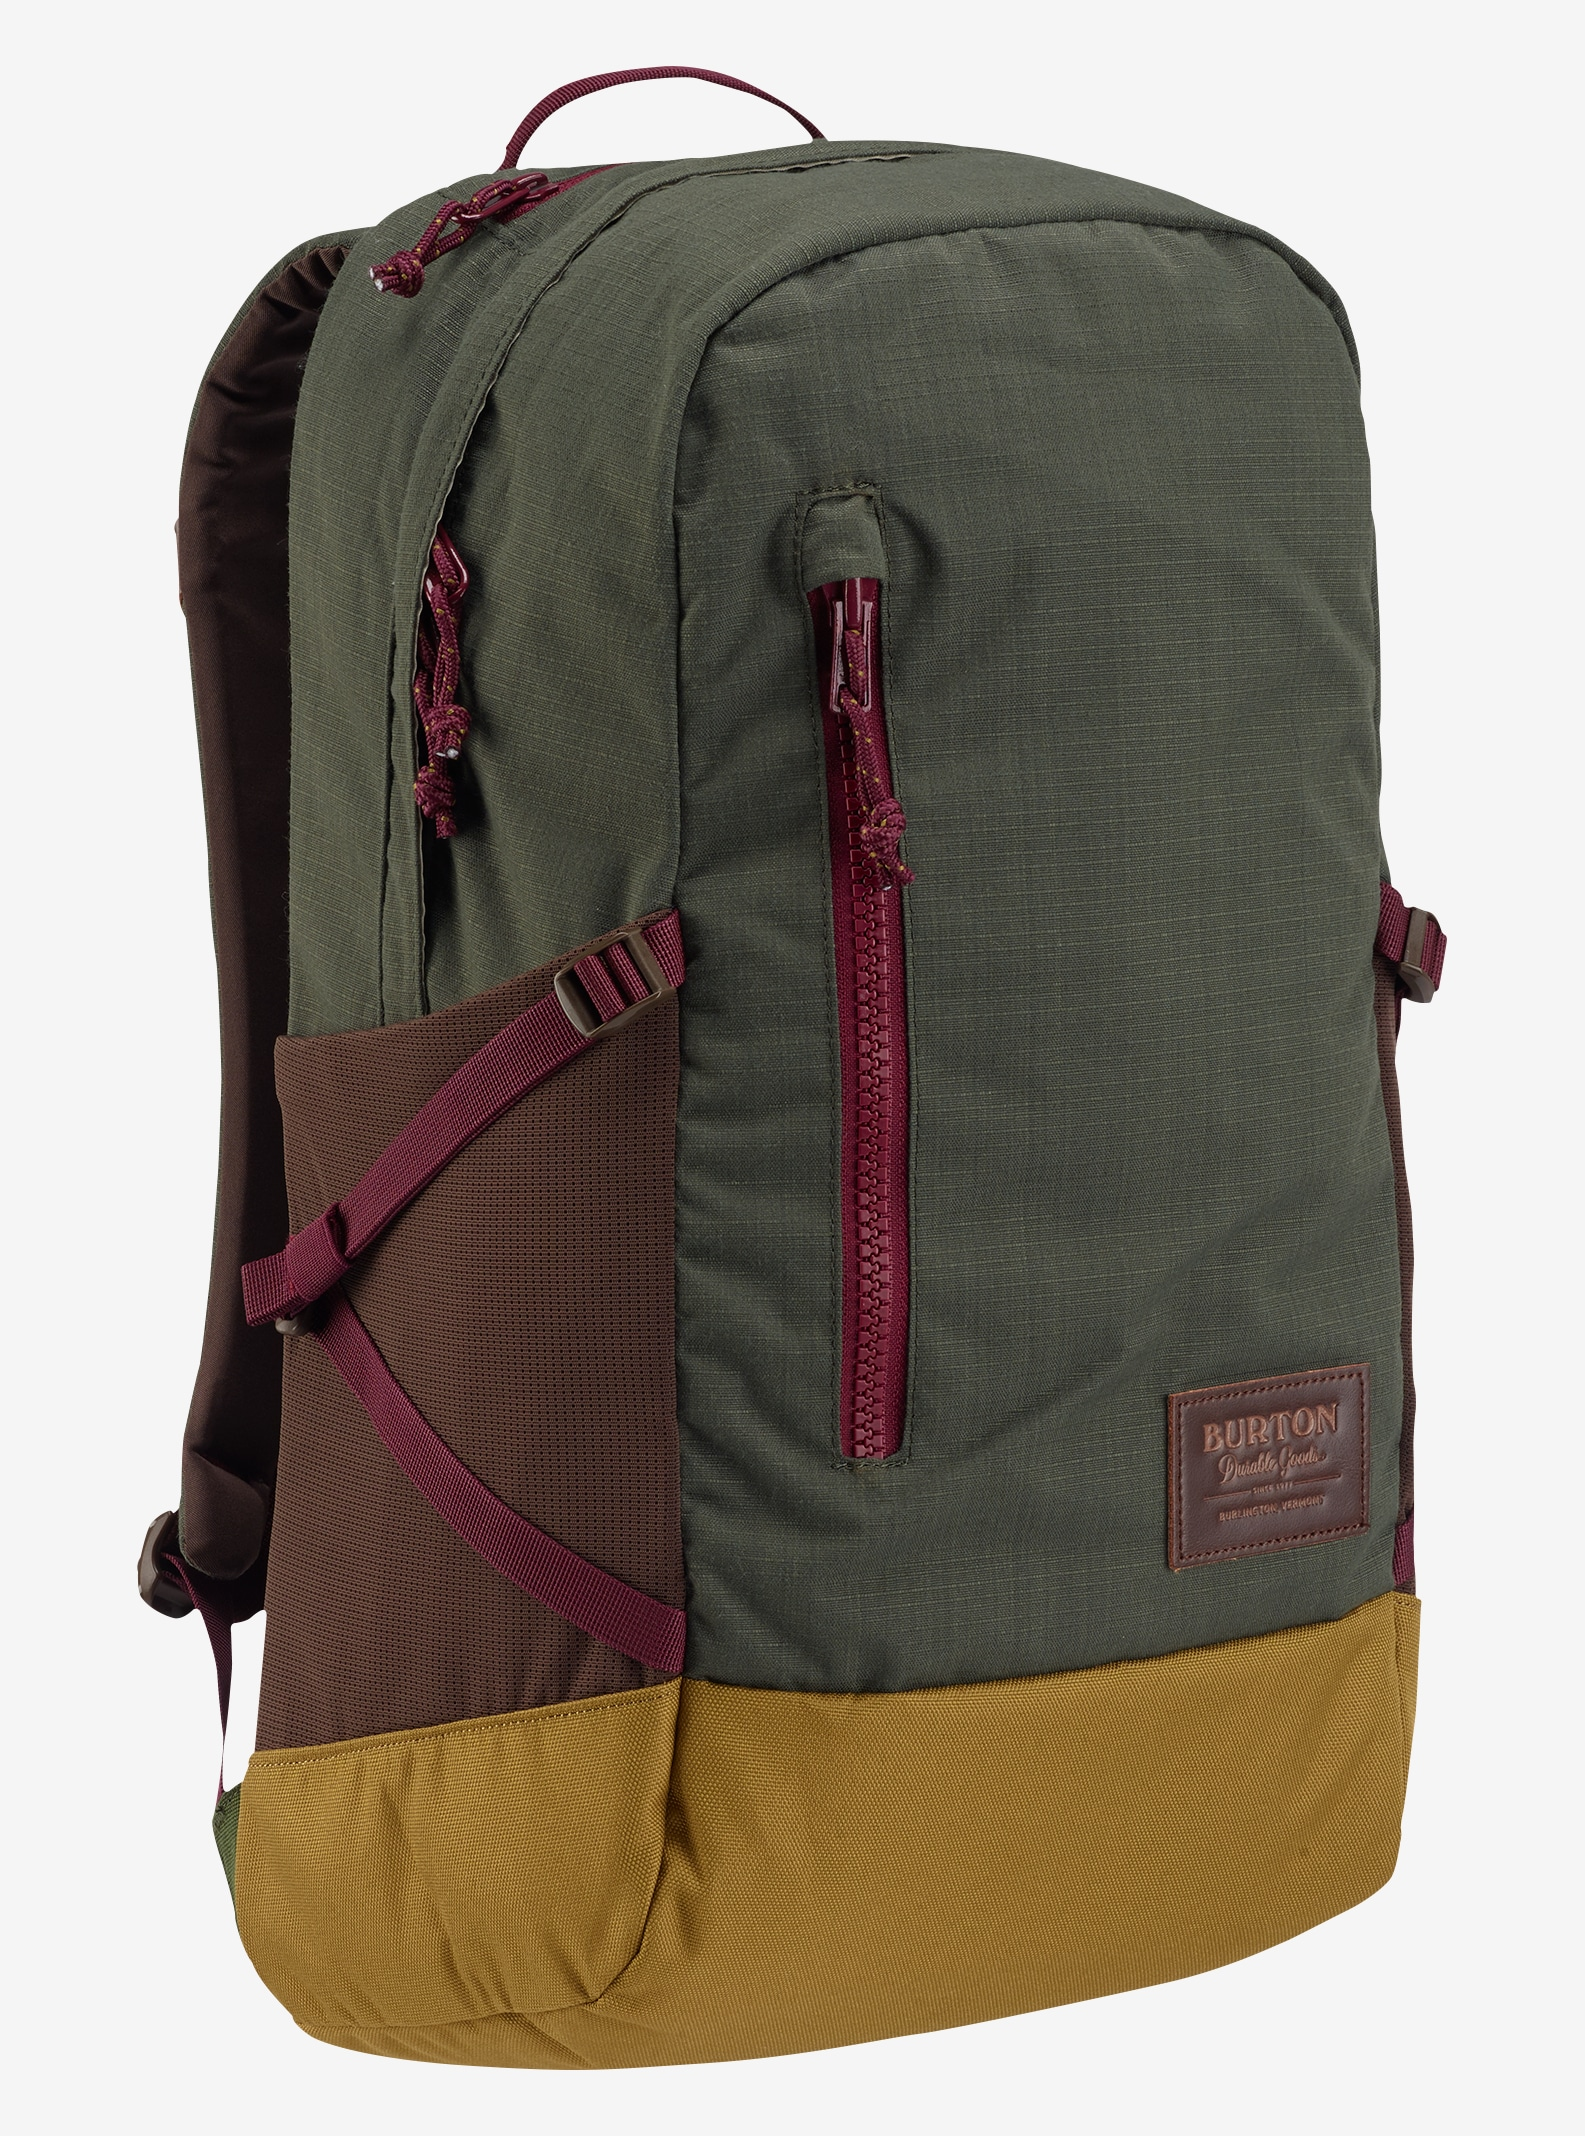 Burton Women's Prospect Backpack shown in Forest Night Ripstop